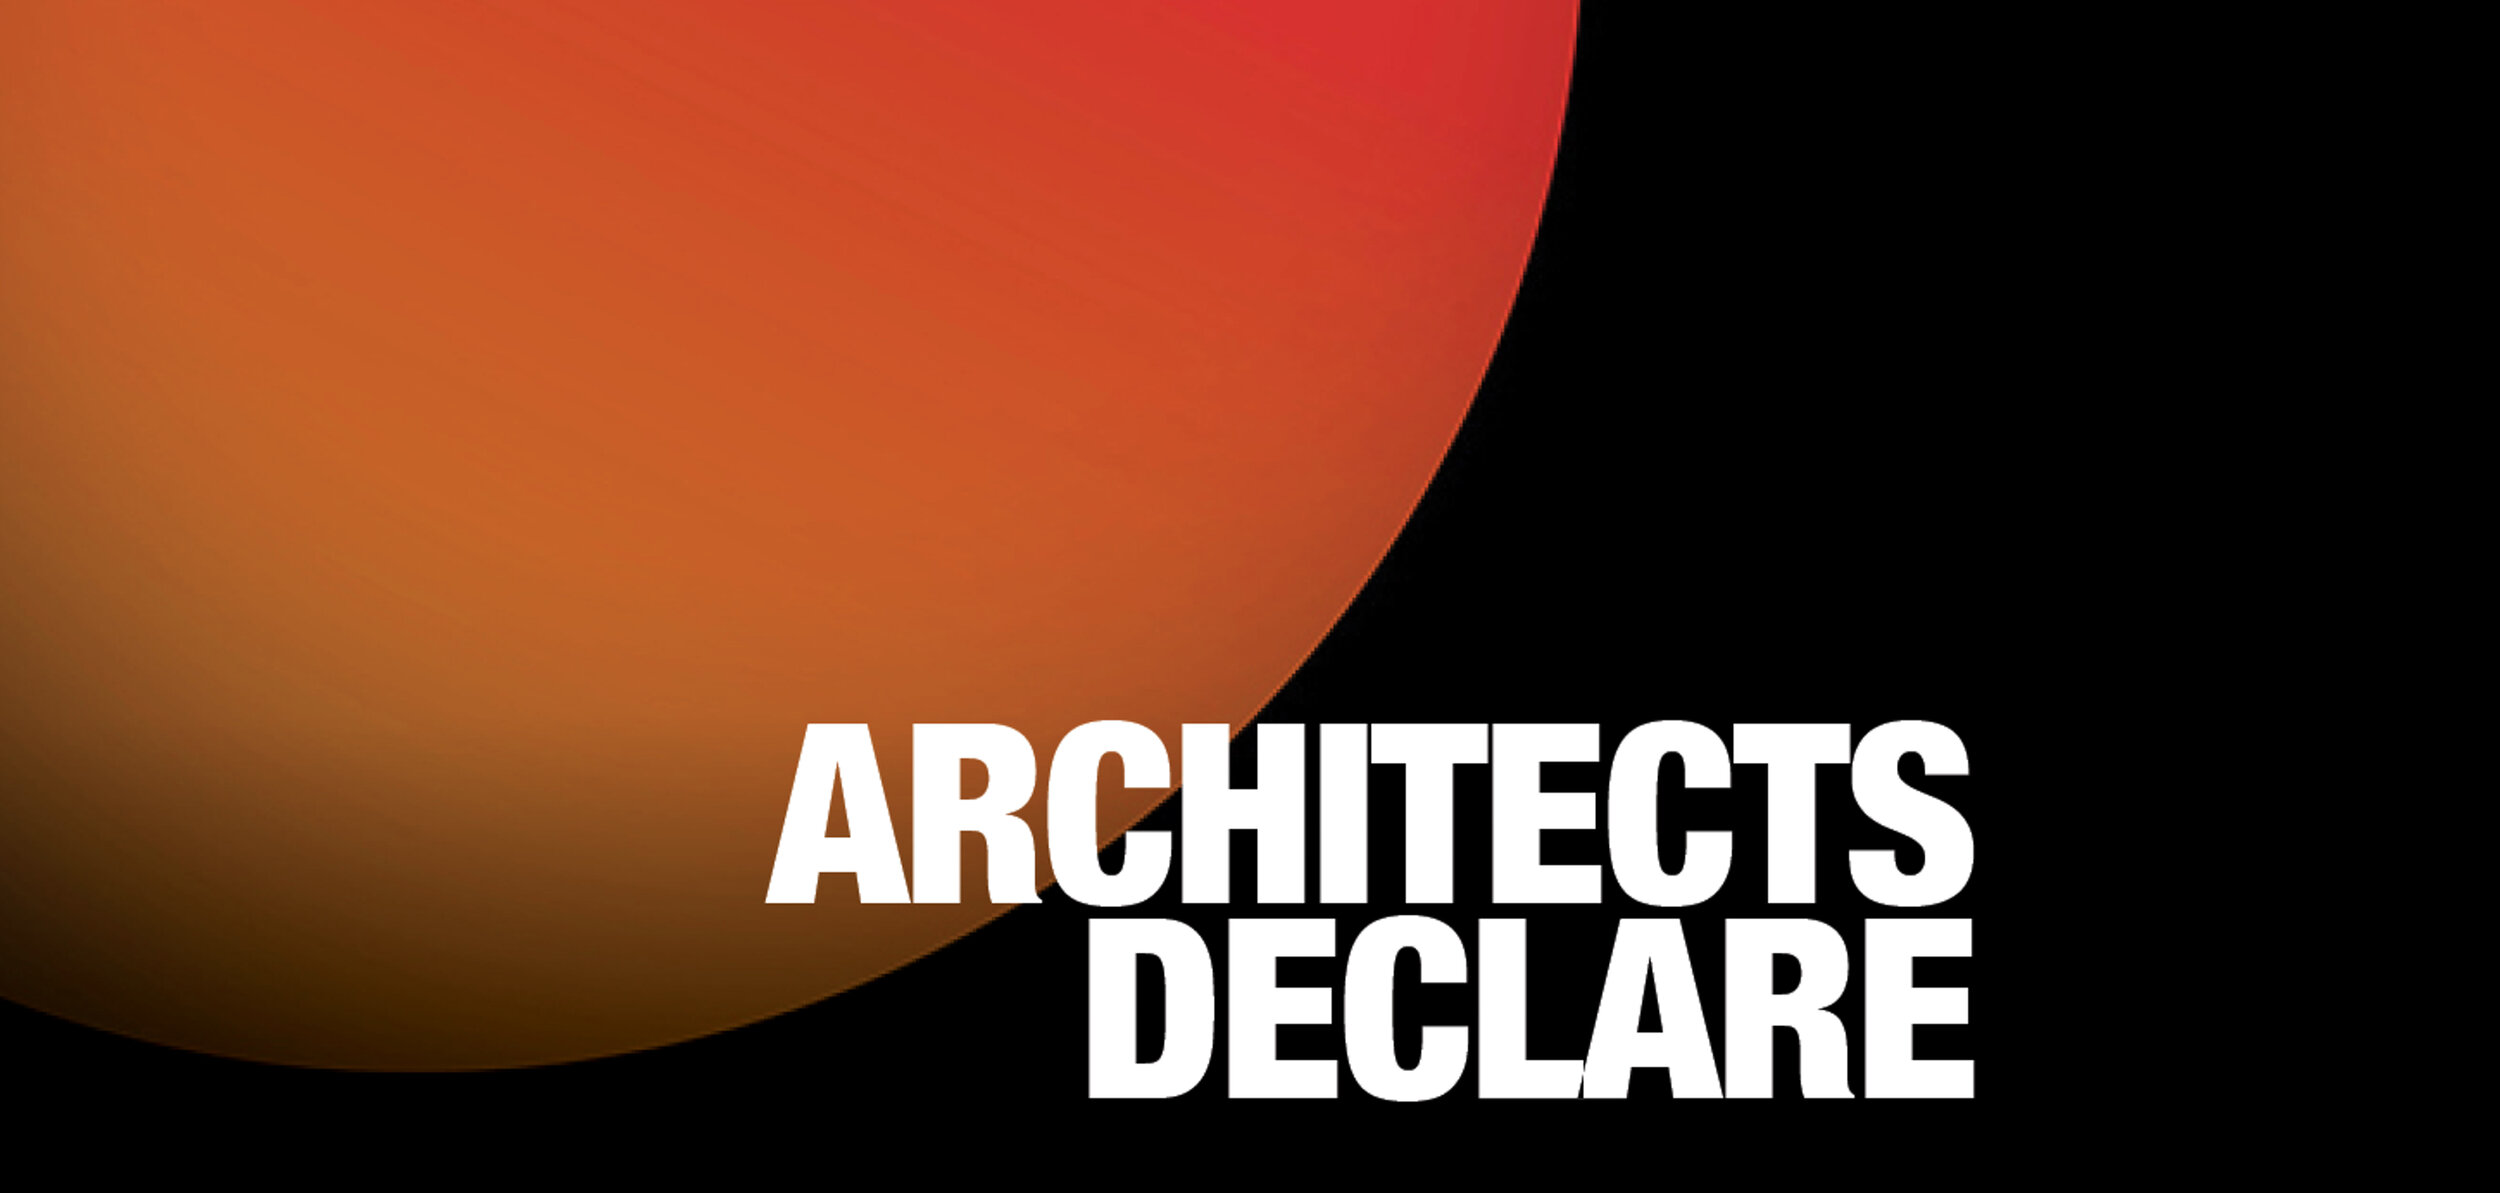 d-on architects have joined the Architects Declare movement